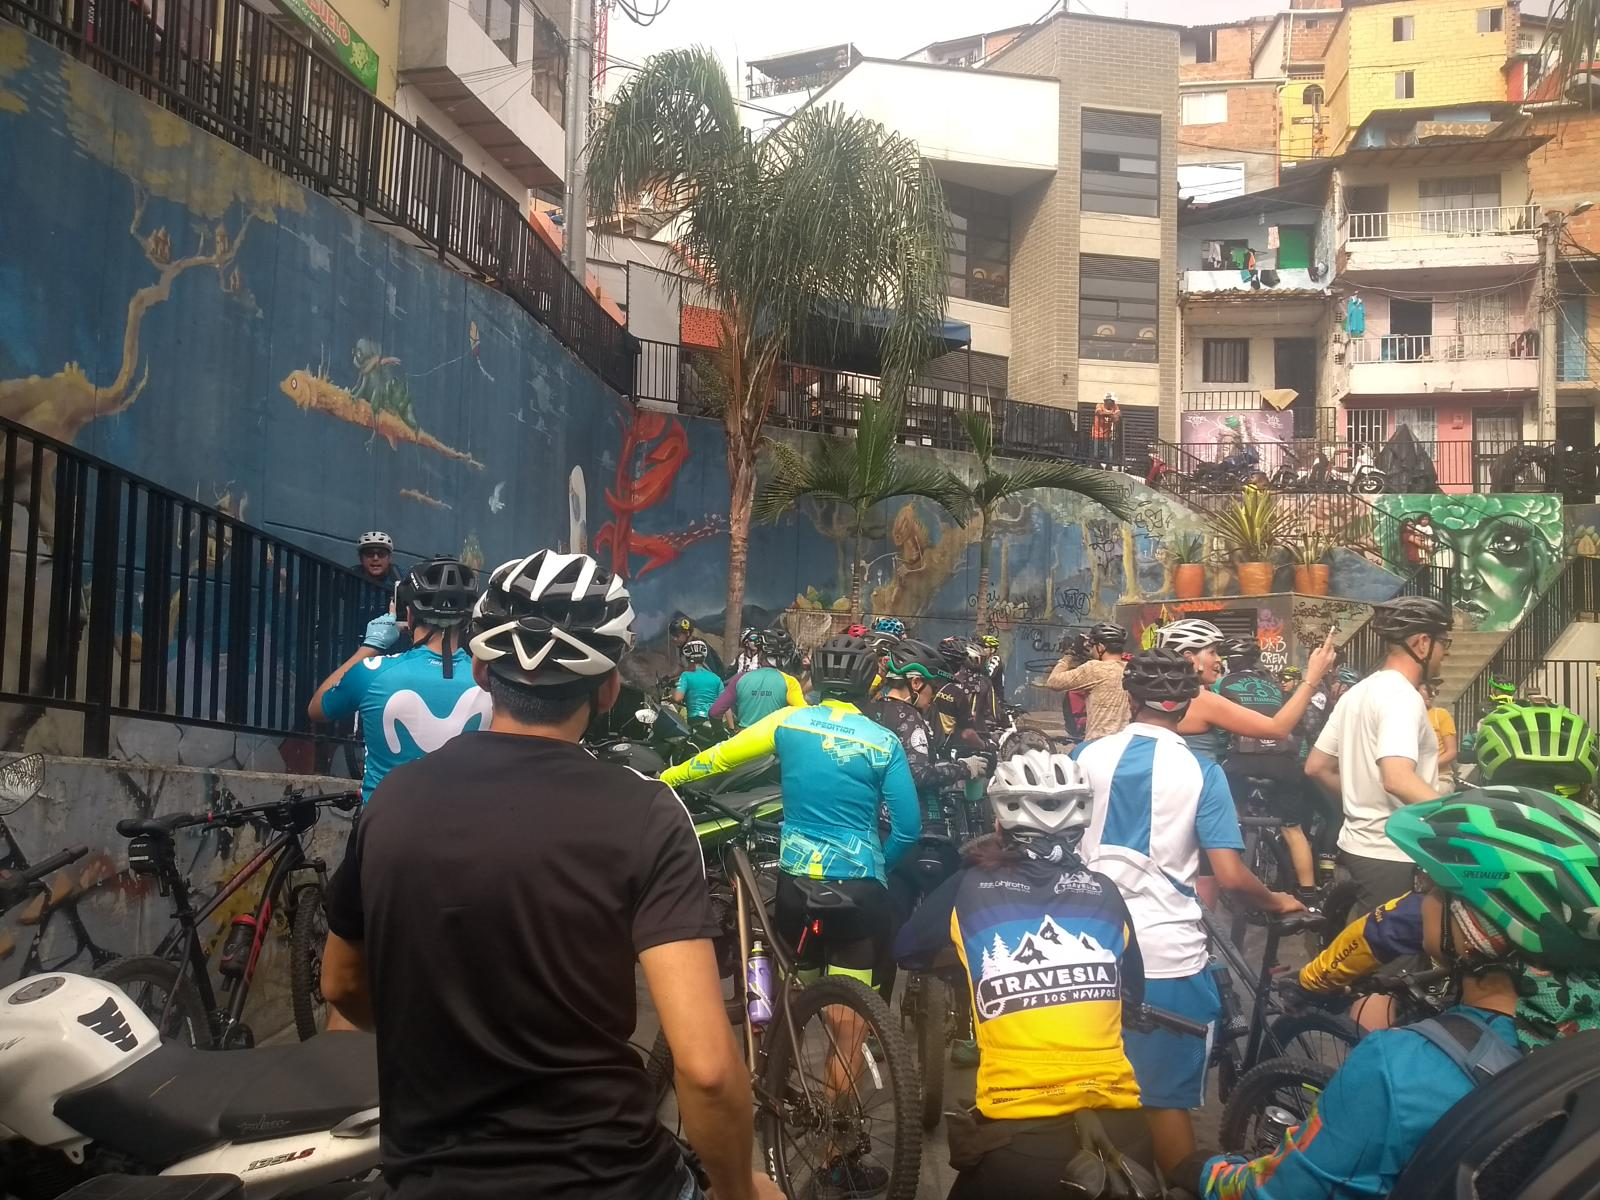 Foto di Bici-Graffy tour comuna 13